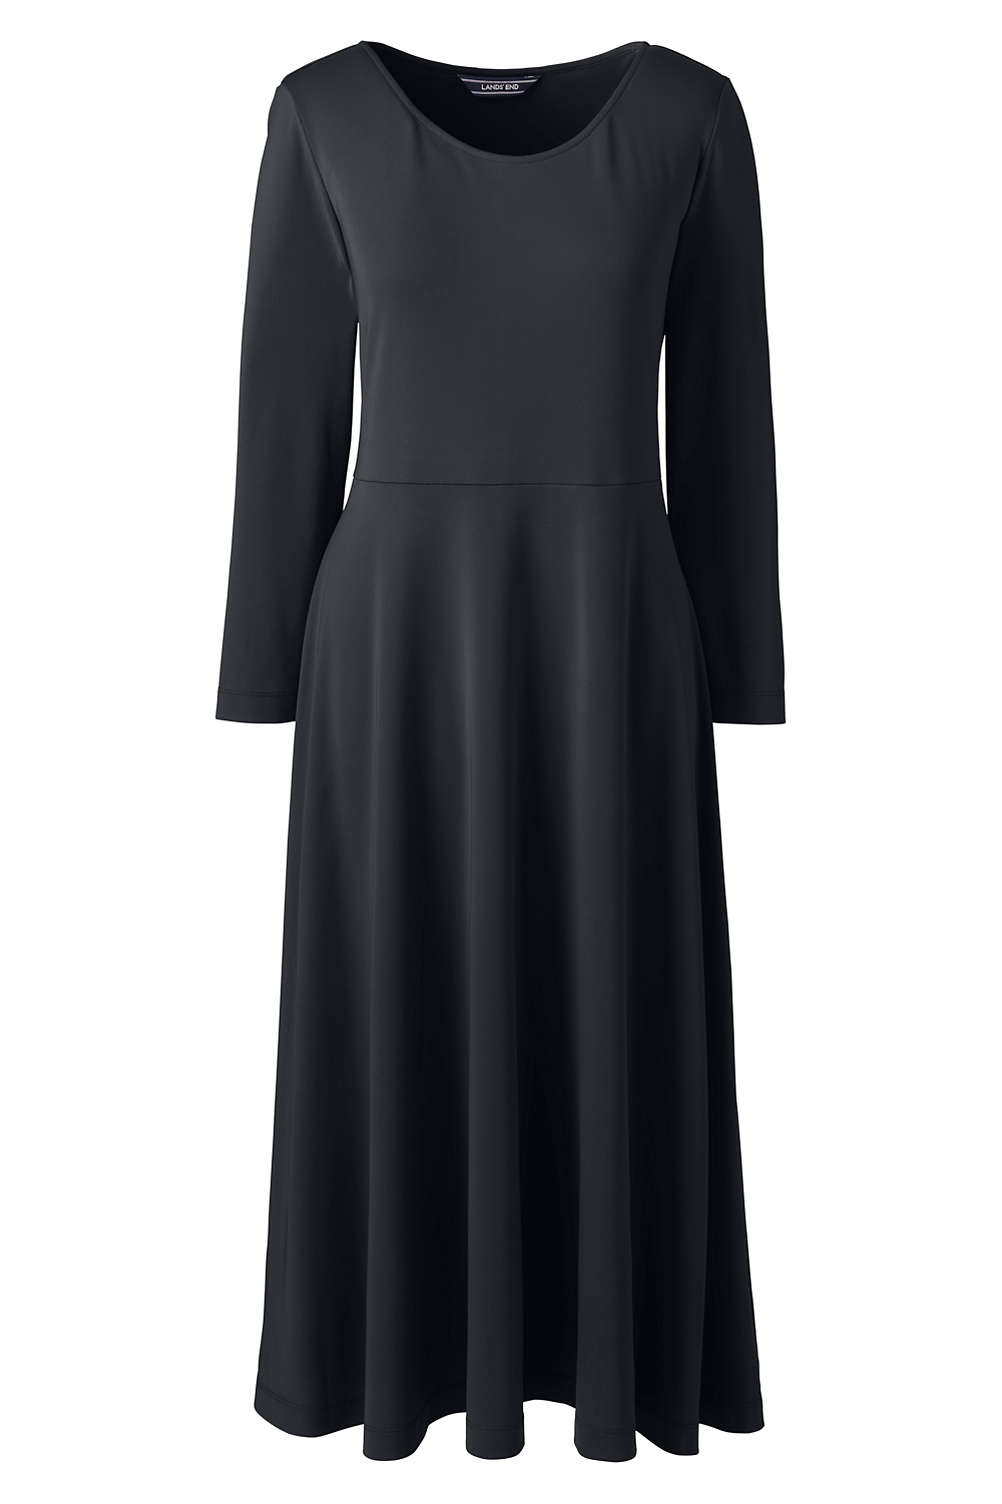 Women S Plus Size 3 4 Sleeve Matte Jersey Aline Dress